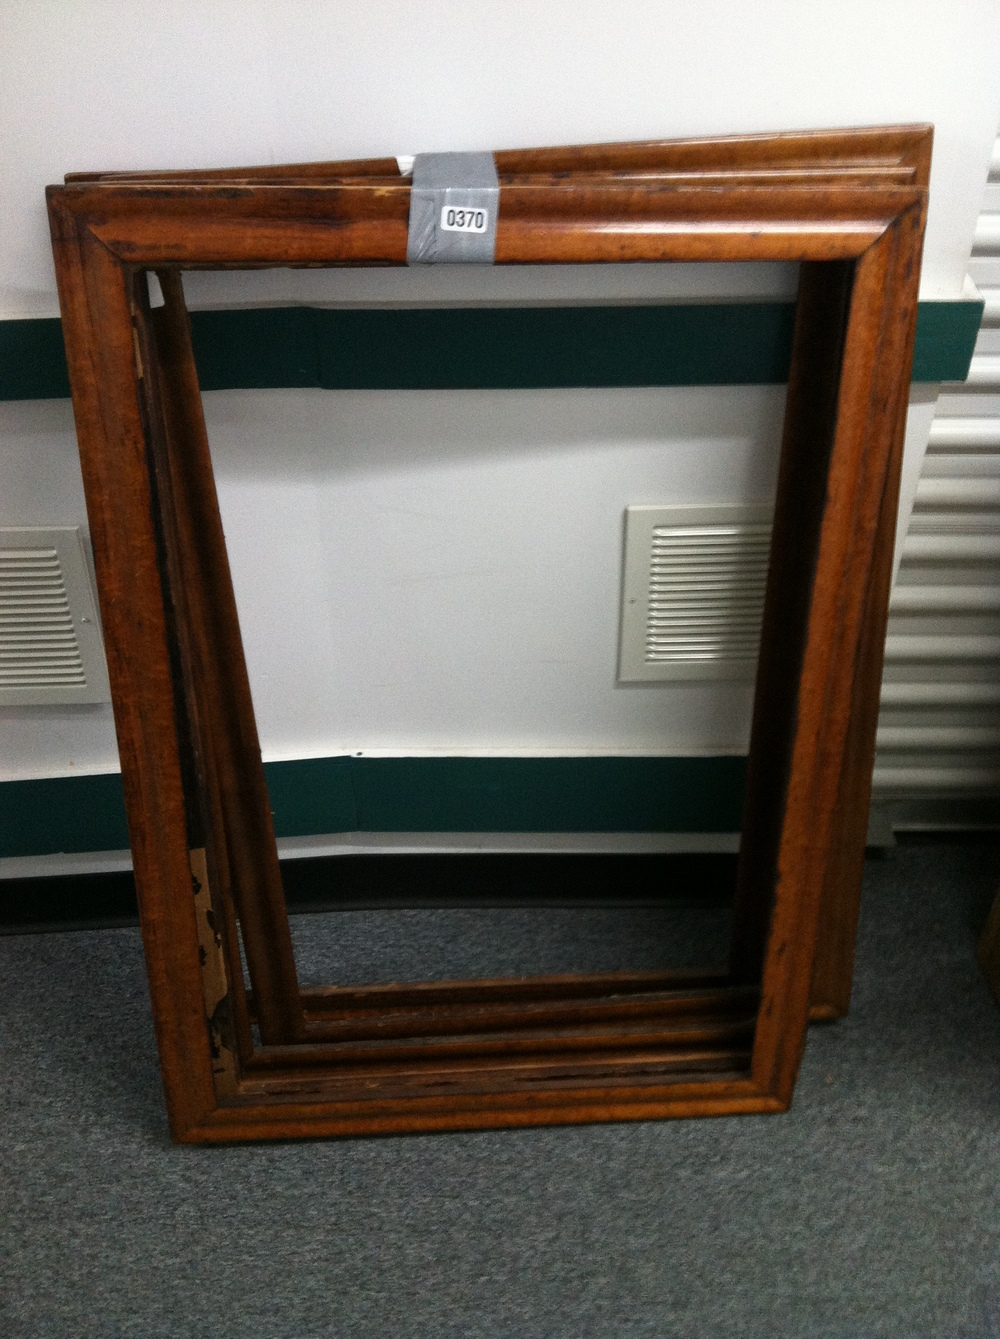 0370: Wood Picture Frames (5x)